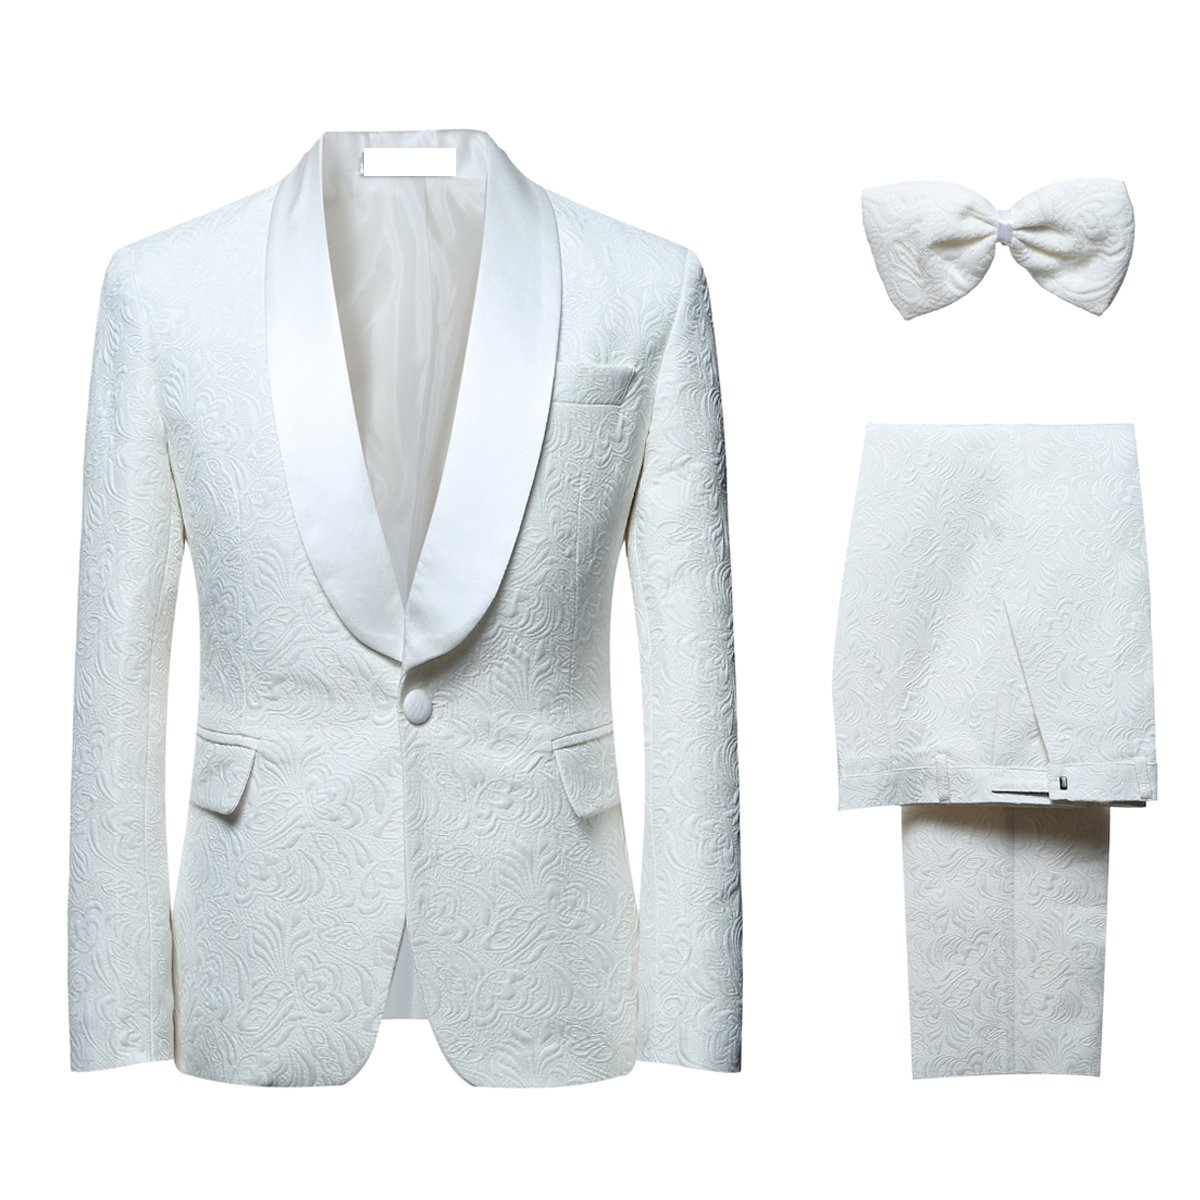 YOUTHUP Men Dinner Suit Jaquard 2 Piece 1 Button Shawl Lapel Slim Fit Tux Tuxedo Jacket and Trousers Big Size EH6047